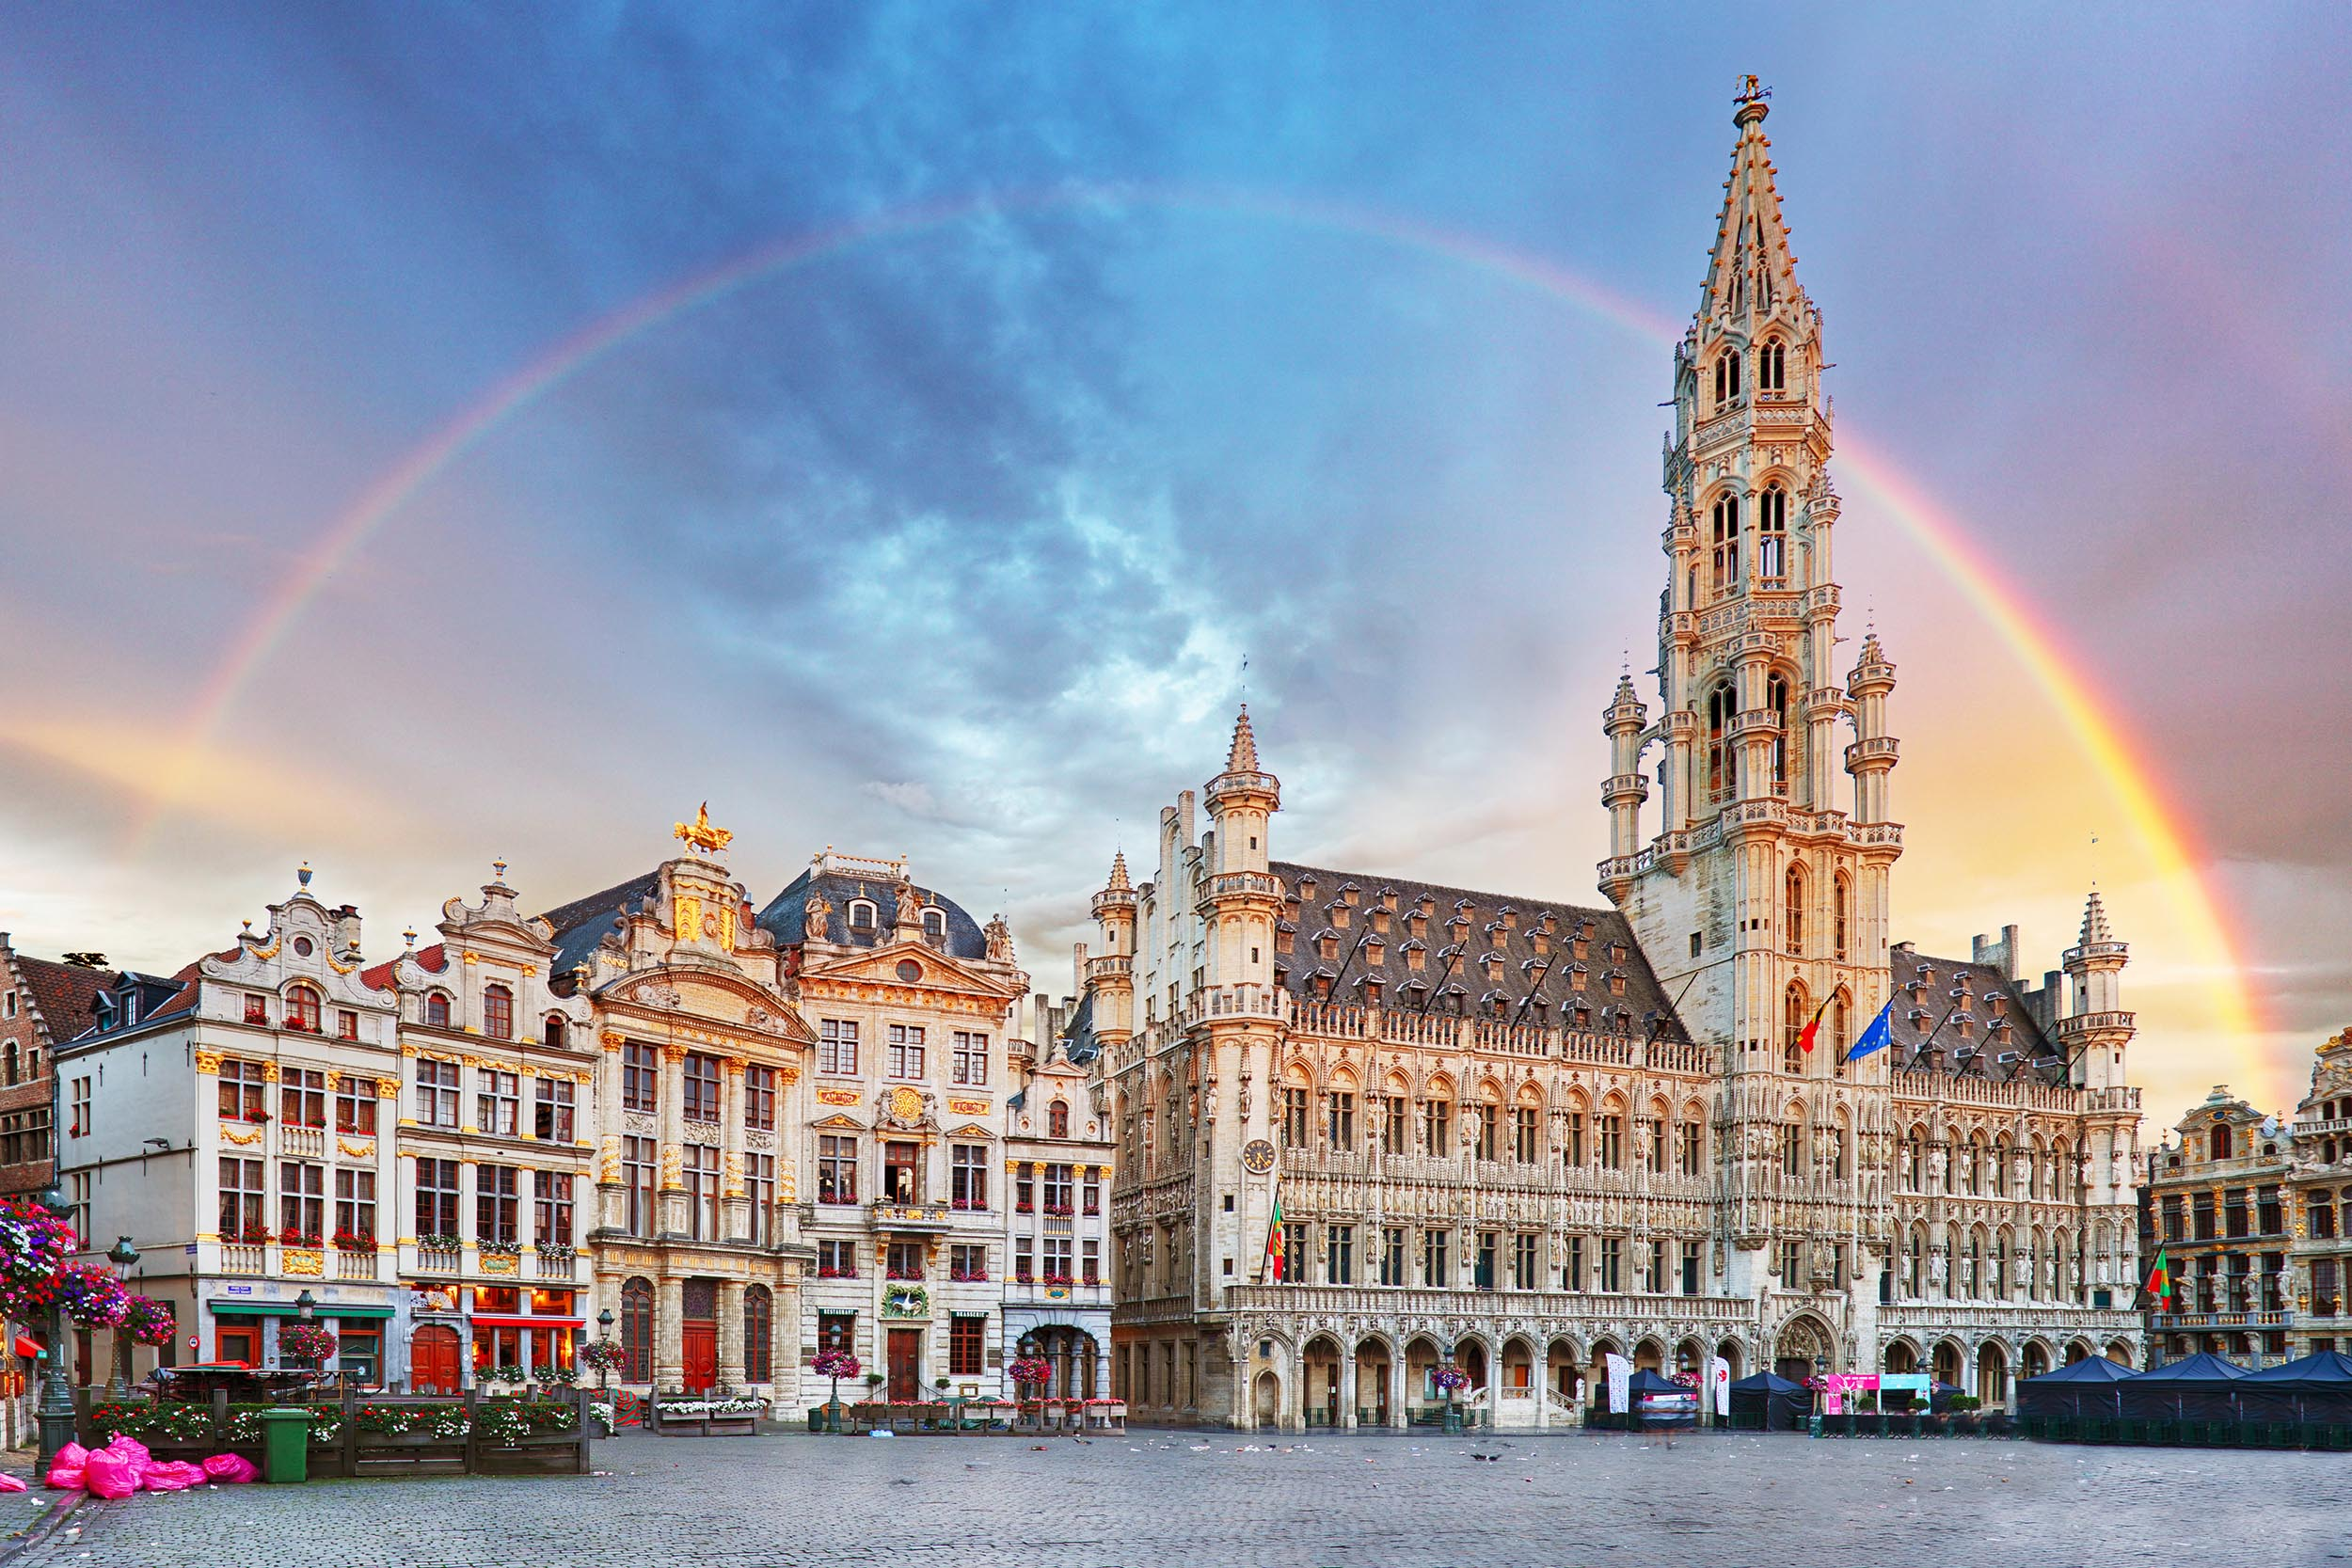 Brussels, rainbow over Grand Place, Belgium, nobody; Shutterstock ID 712426702; Purchase Order: -